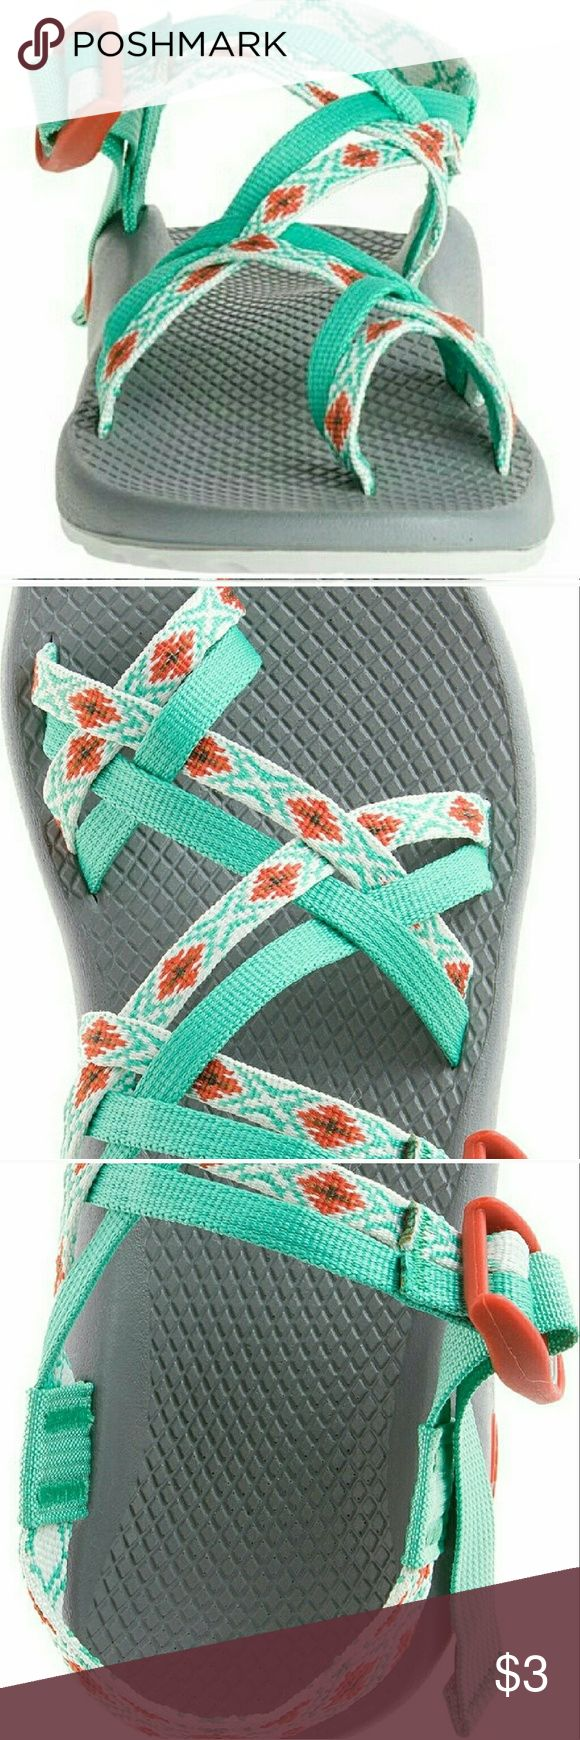 🍁ISO Chacos ISO. Size 7 in this color and this size. These are not for sale, they're iso. Please Read! Do not buy or add to a bundle. I've already had 2 people buy these *shakes head. Who are these people that buy without reading?🤔 Chaco Shoes Sandals